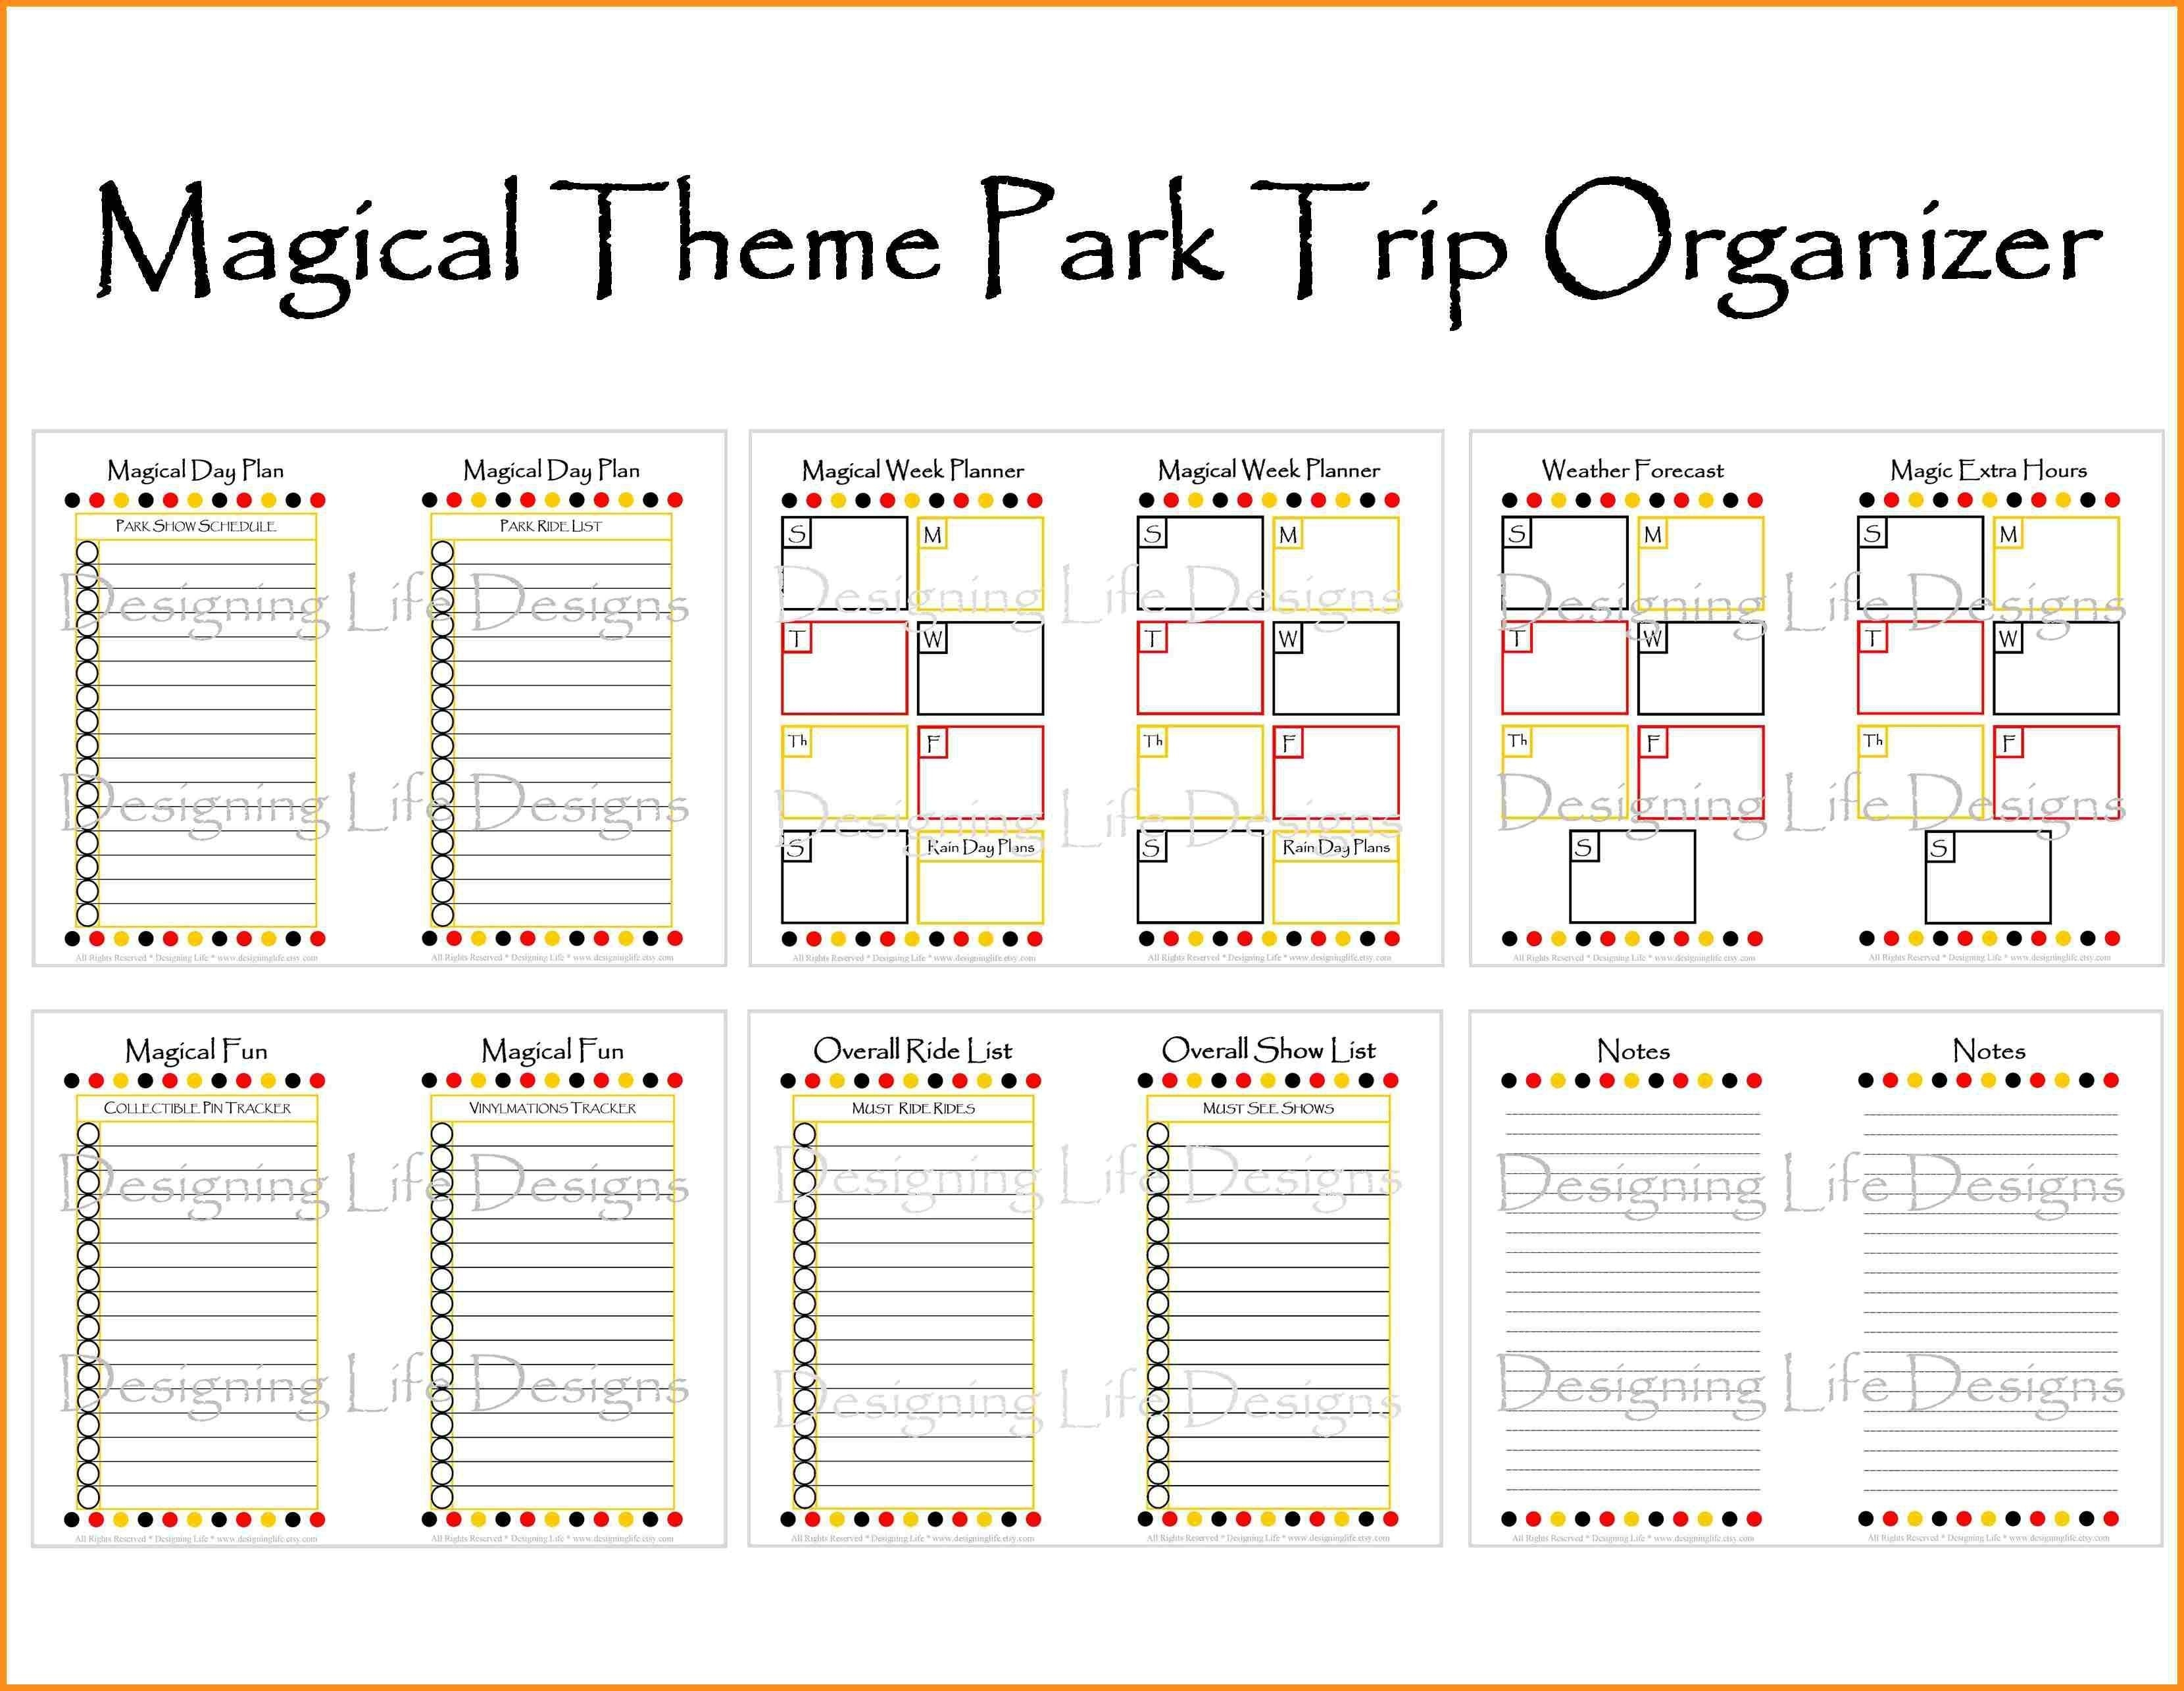 Image Result For Disney World Itinerary Template | Disney-Free Printable Disney Itinerary Template